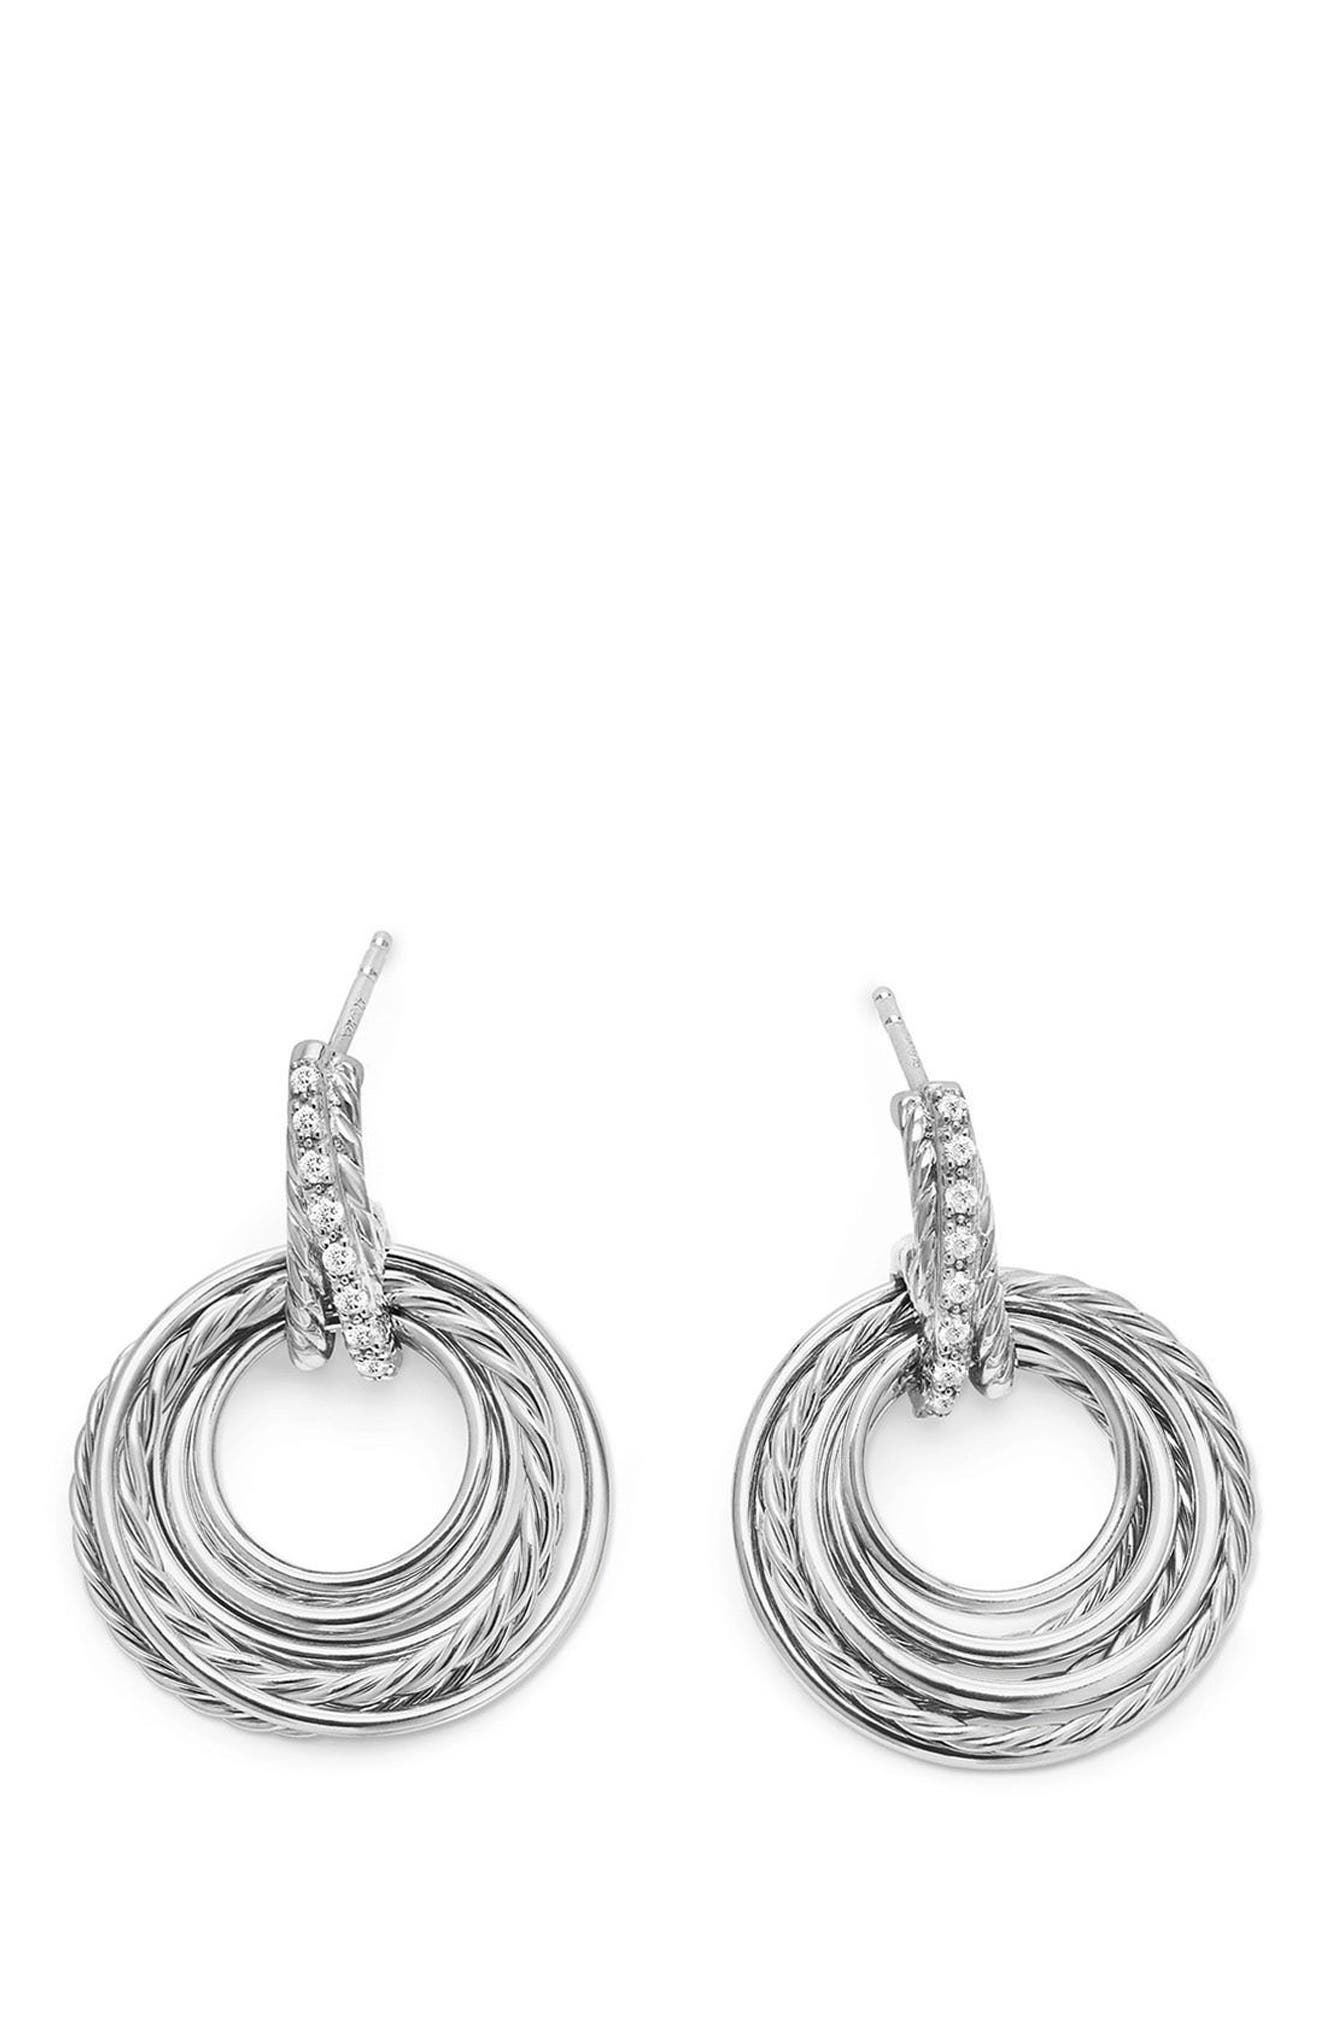 Crossover Drop Earrings with Diamonds,                             Alternate thumbnail 2, color,                             SILVER